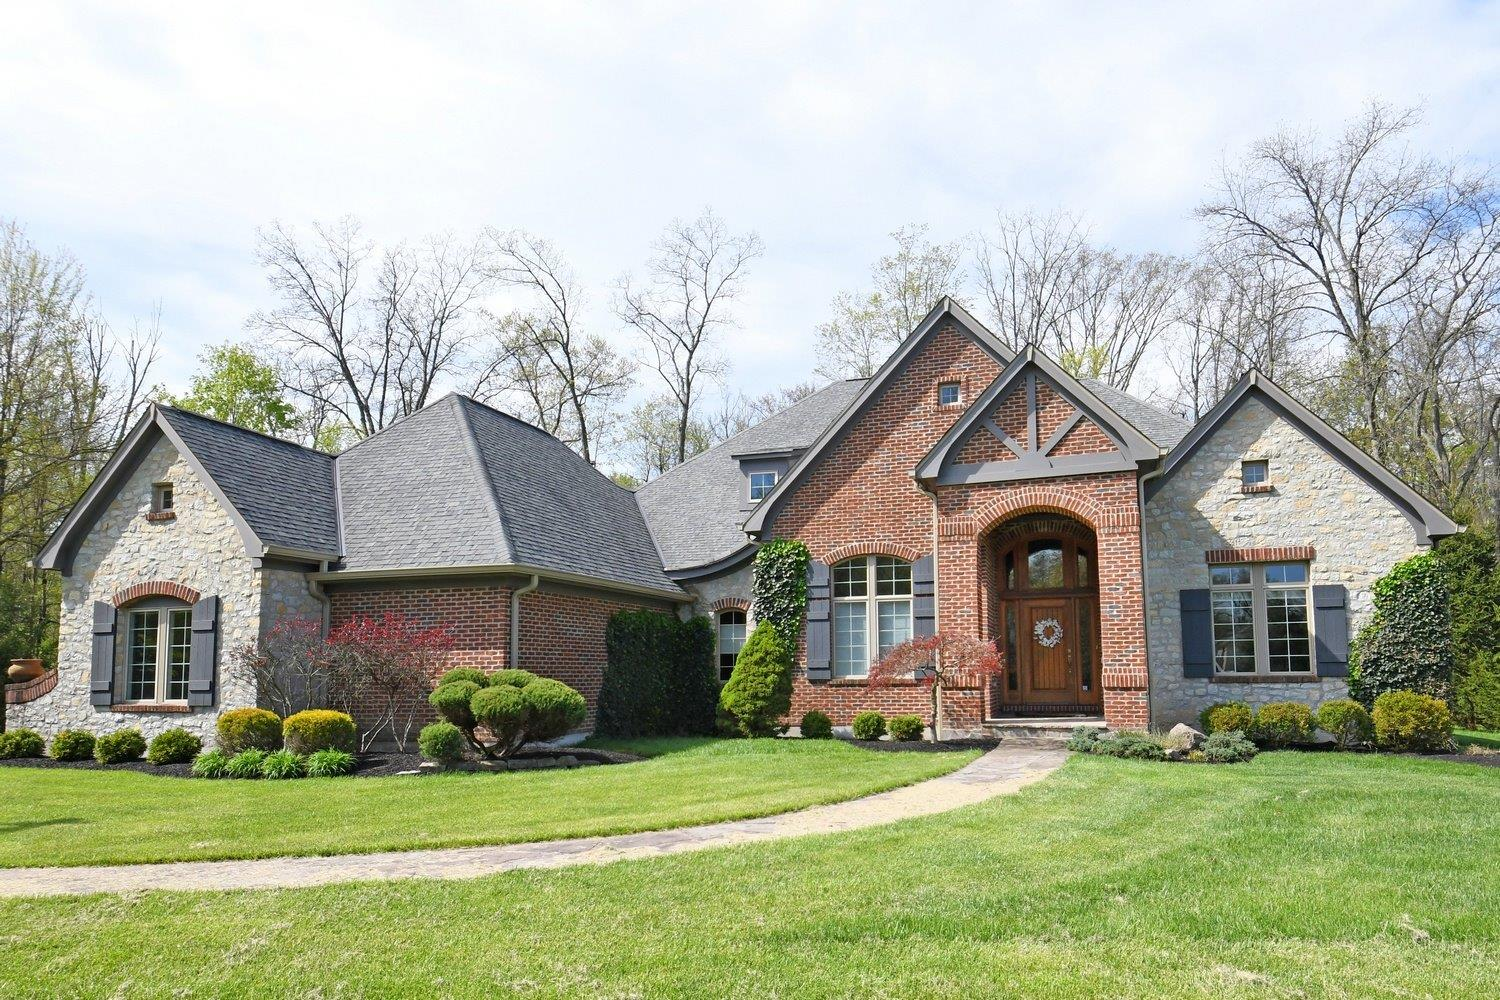 Property for sale at 9671 Timberline Court, Hamilton Twp,  Ohio 45140